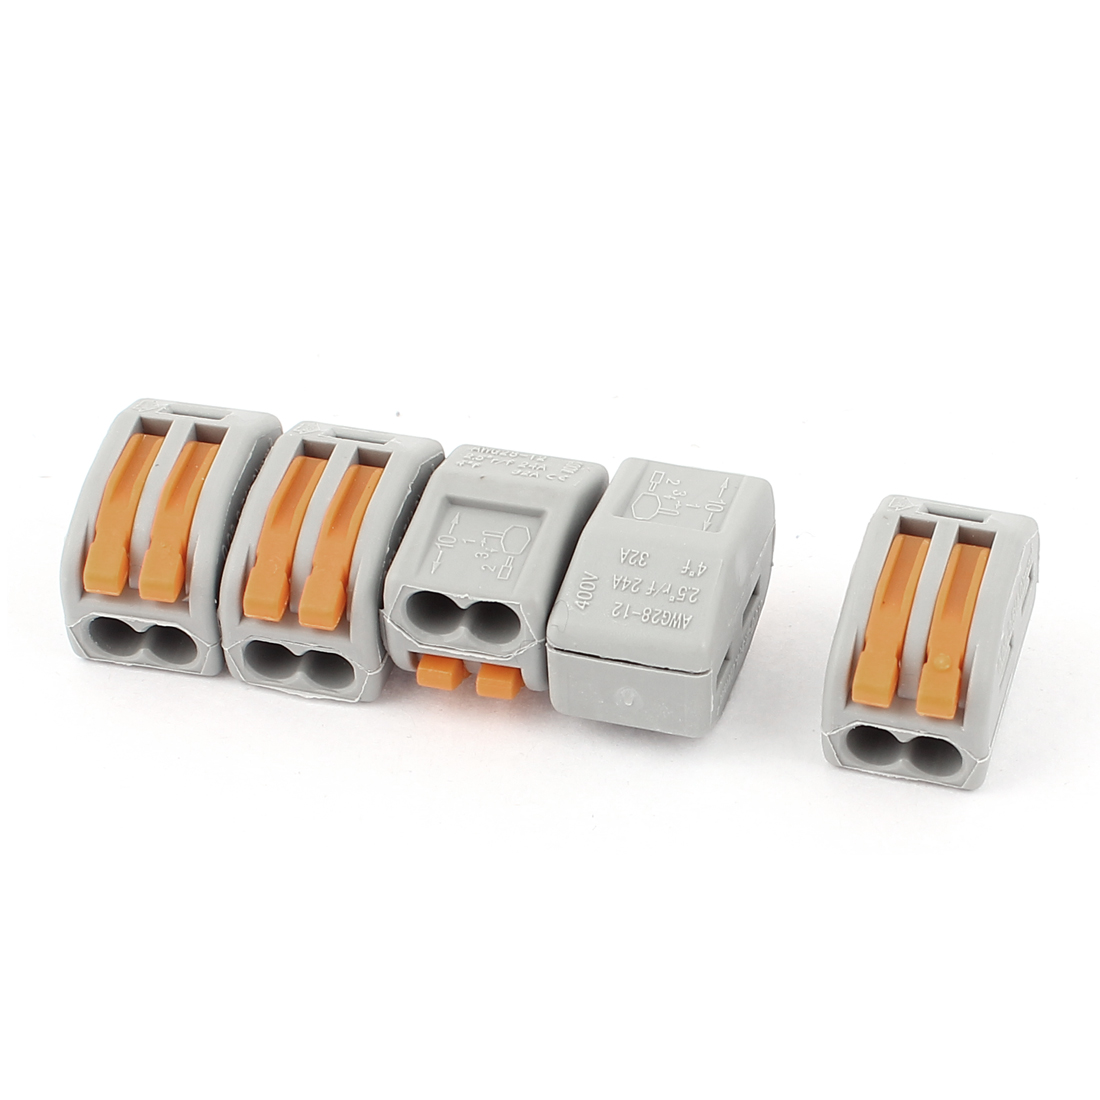 5 Pcs AC 250V 32A Fast Cable Push in 2 Port Building Wire Connector Safe Terminal Block